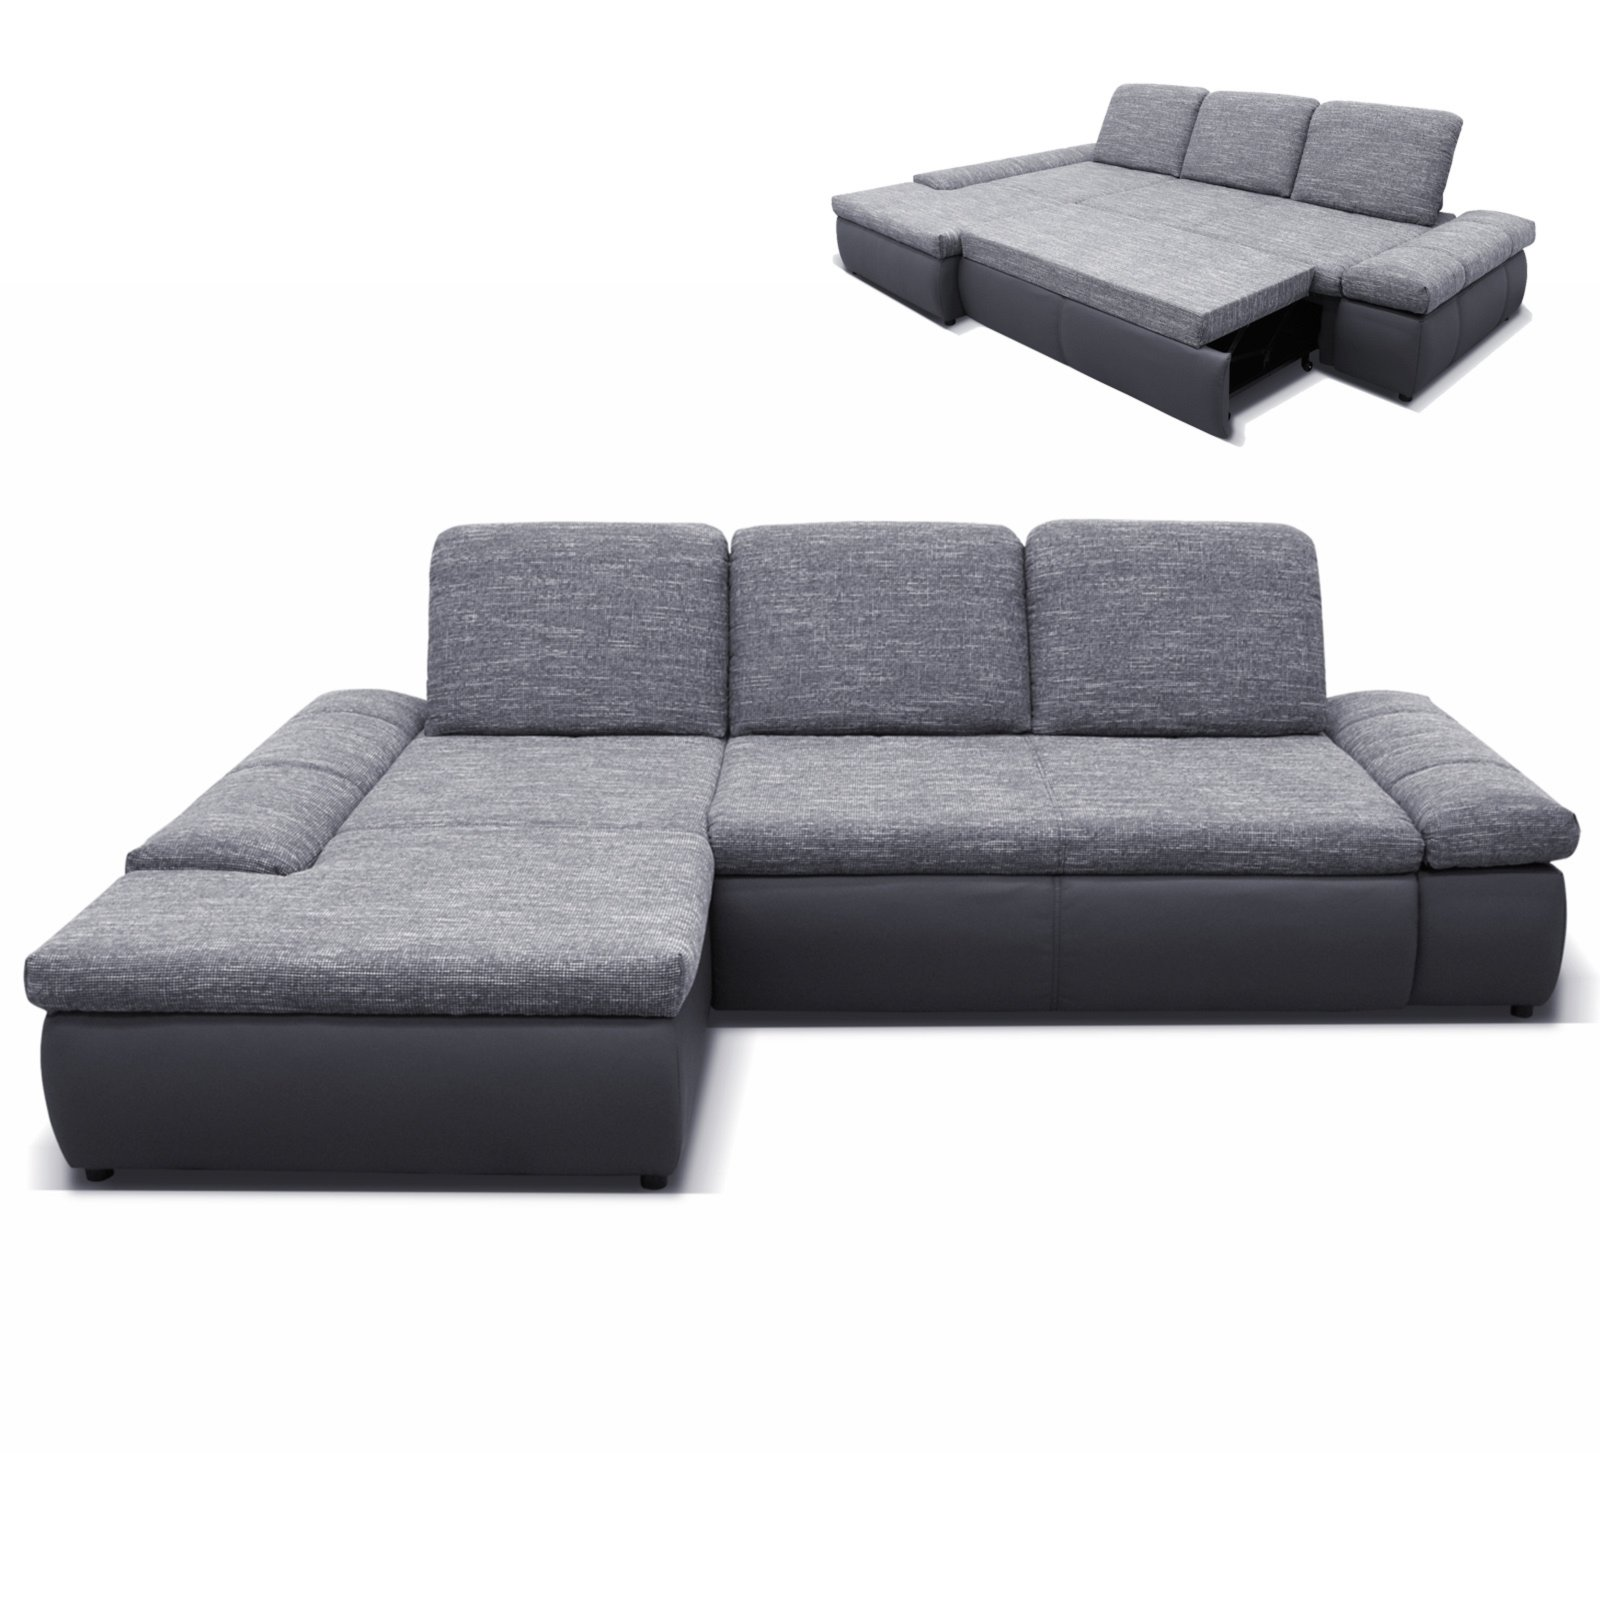 polsterecke grau dunkelgrau mit funktionen recamiere links ecksofas l form sofas. Black Bedroom Furniture Sets. Home Design Ideas